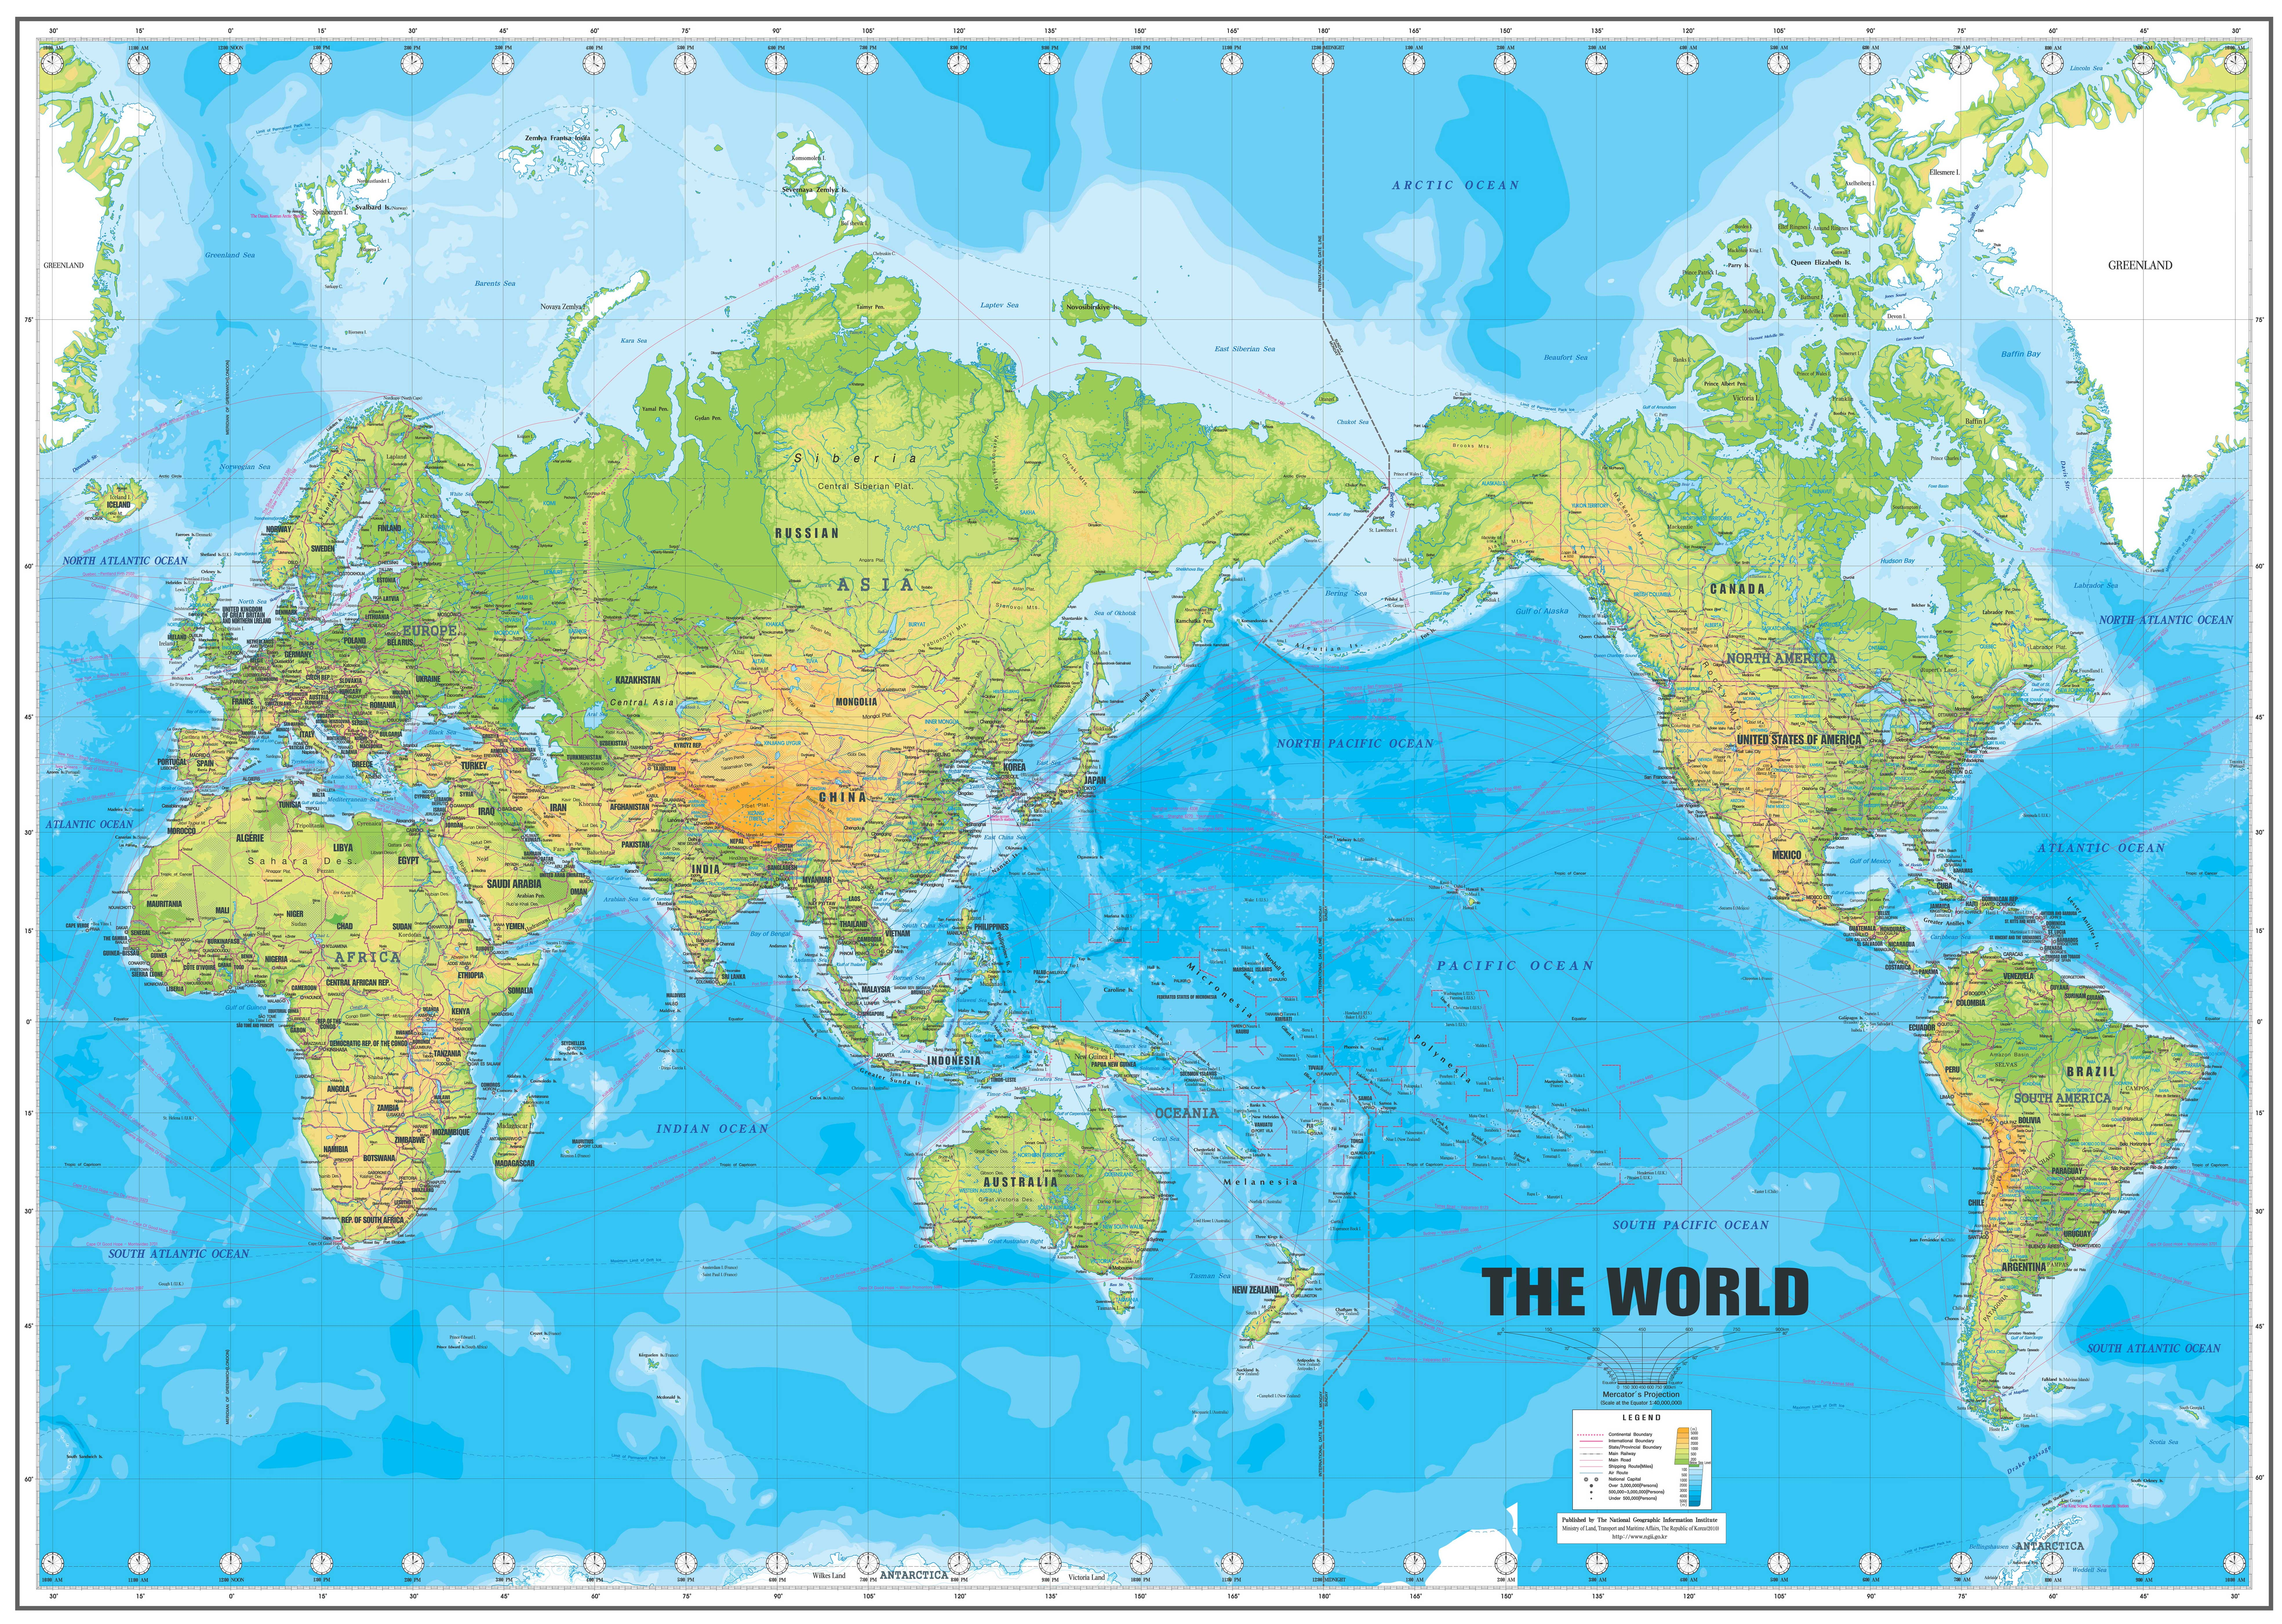 map-world_342_100-4.jpg - JPEG - 20.4 Mo - 7874×5605 px